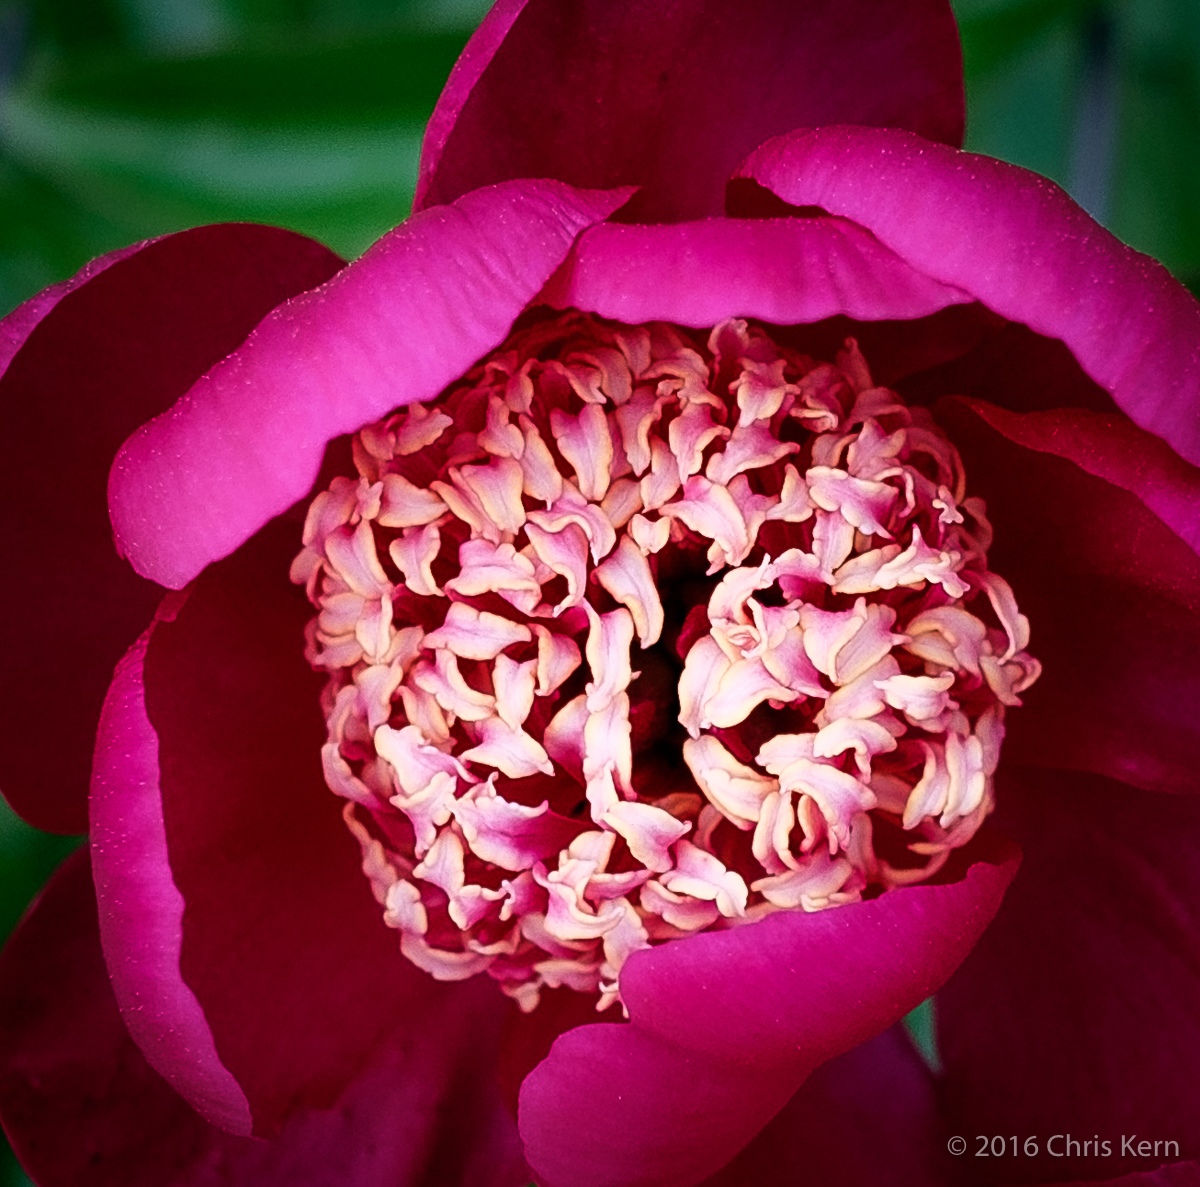 Paeonia Lactiflora, Rockville, Maryland, USA (2016)